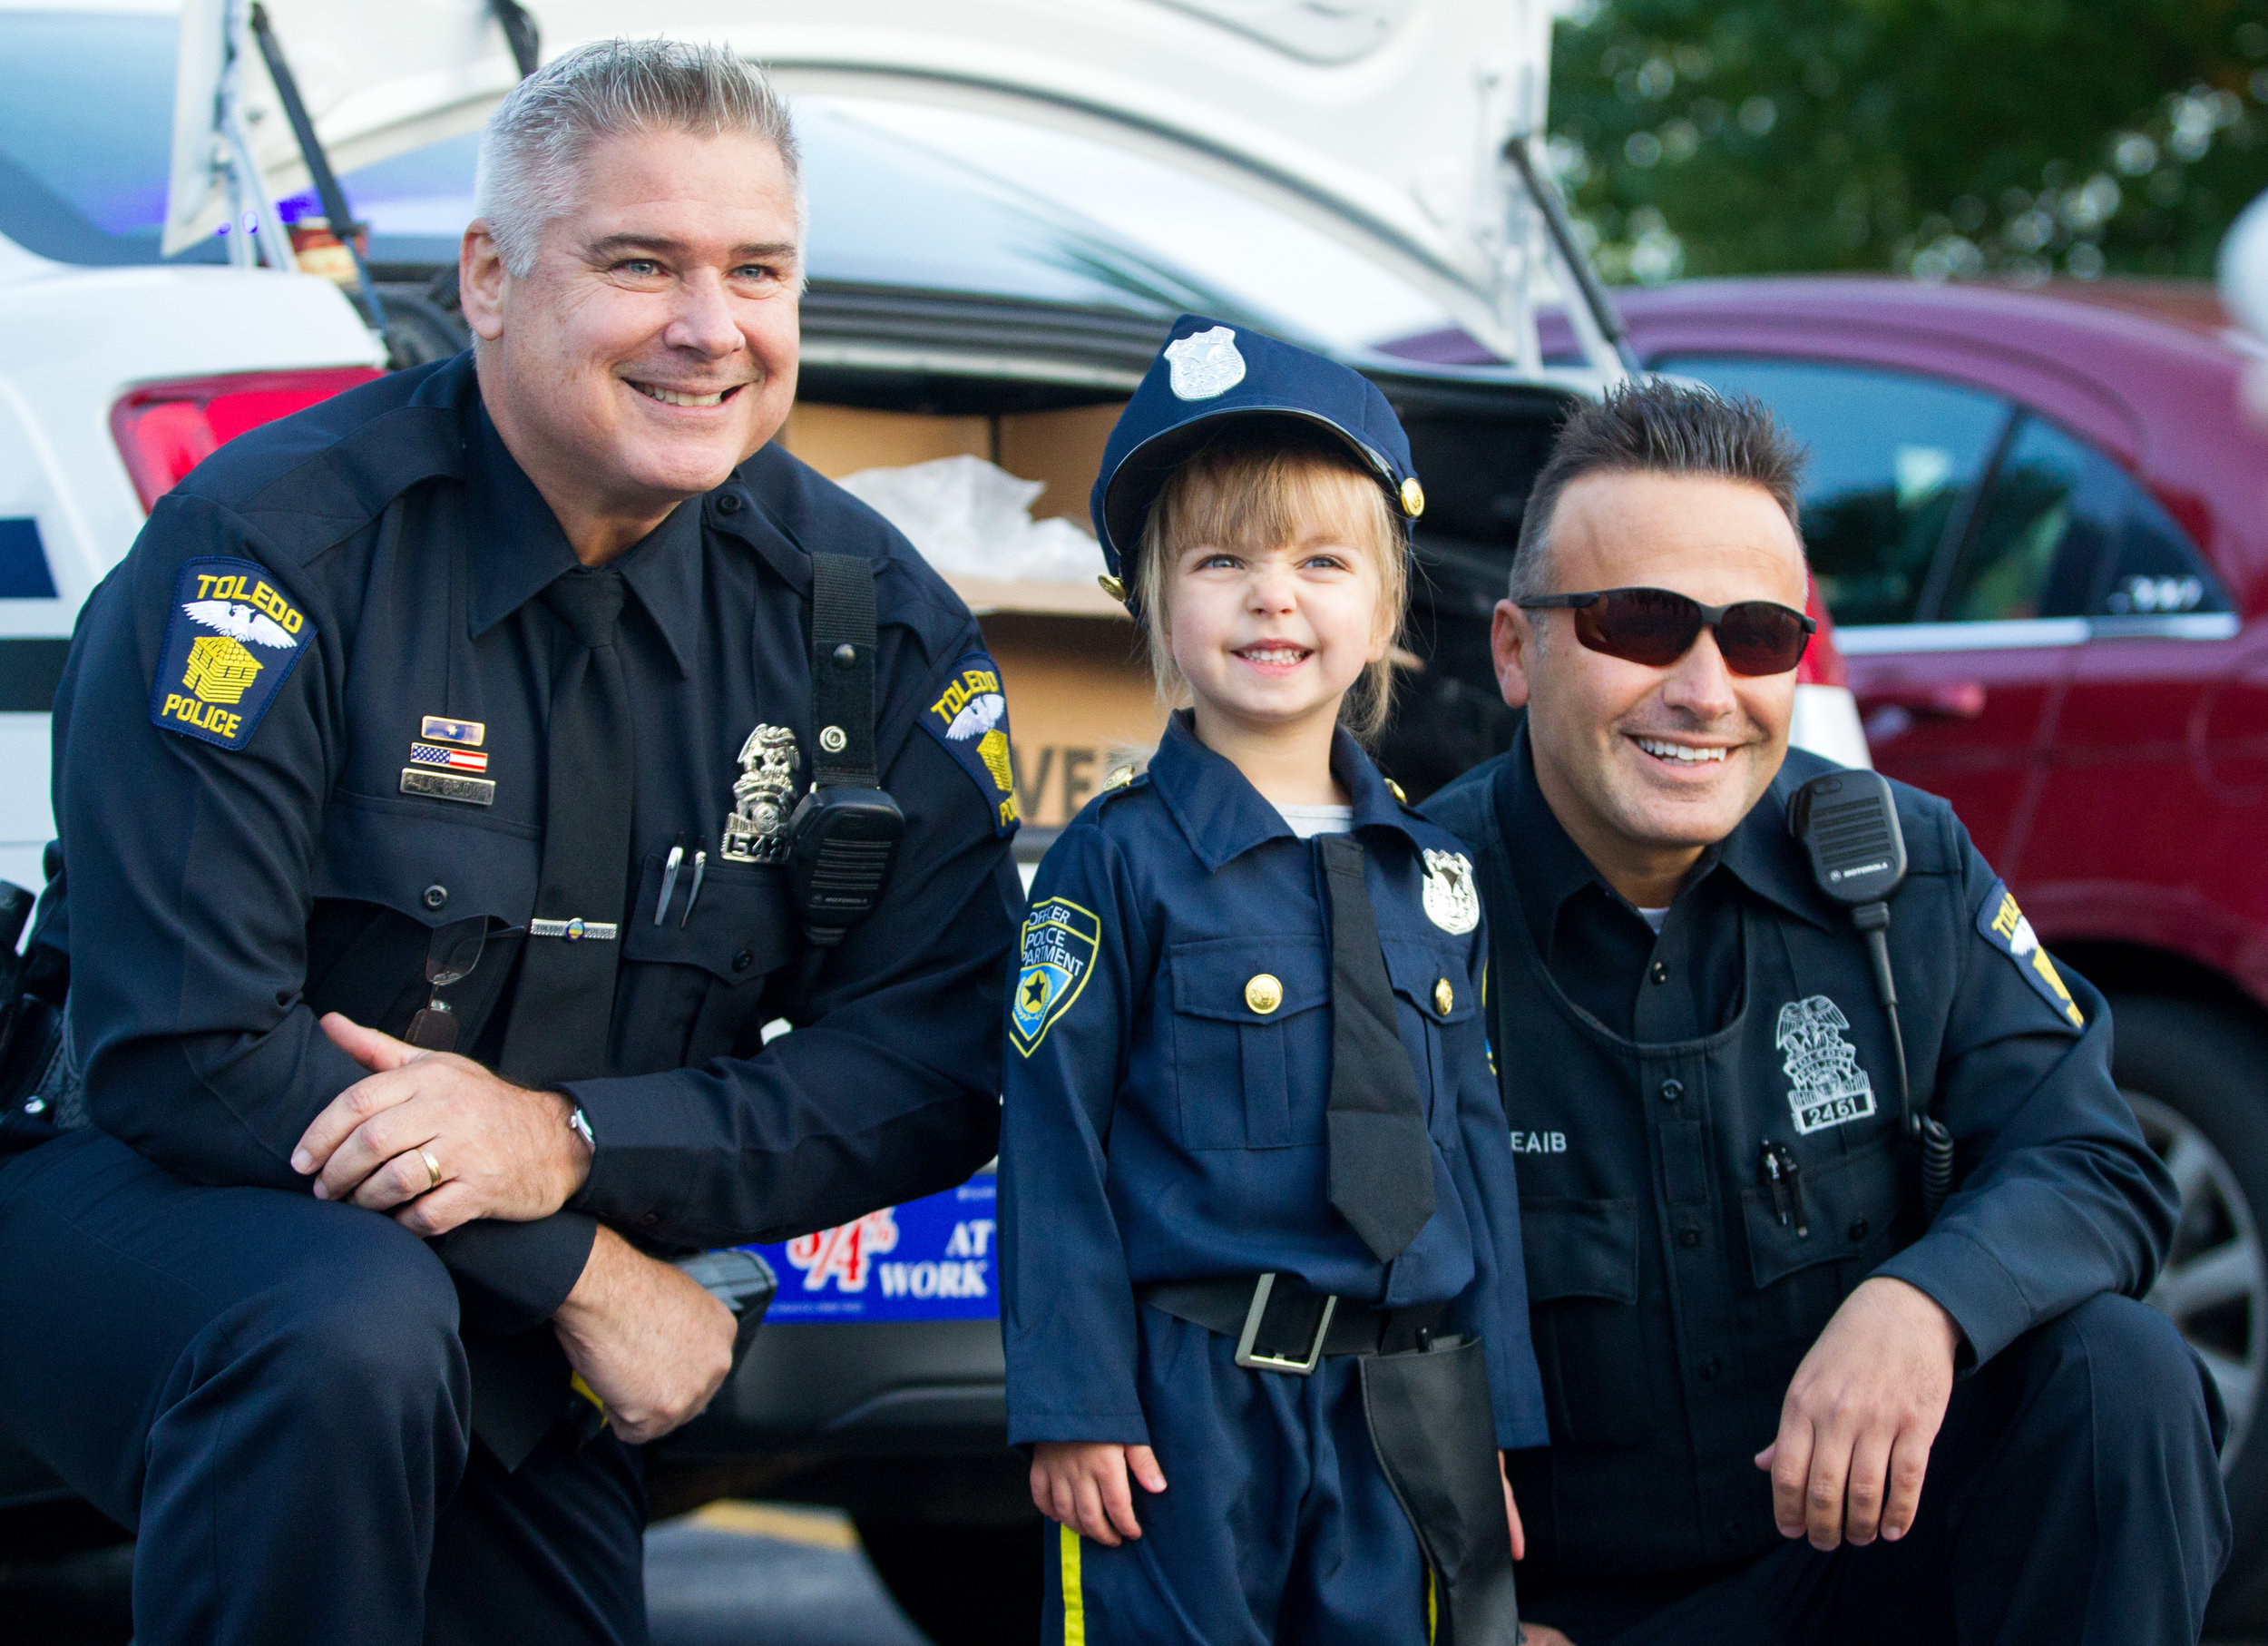 Toledo police officers Jim Below, left, and Hassane Cheaib, right, pose with Morgan Mahaney, 3, during the Winterfield Venture Charter Academy's Fall Festival at the school on Wenz Rd. in Toledo on Tuesday, Oct. 25, 2016.